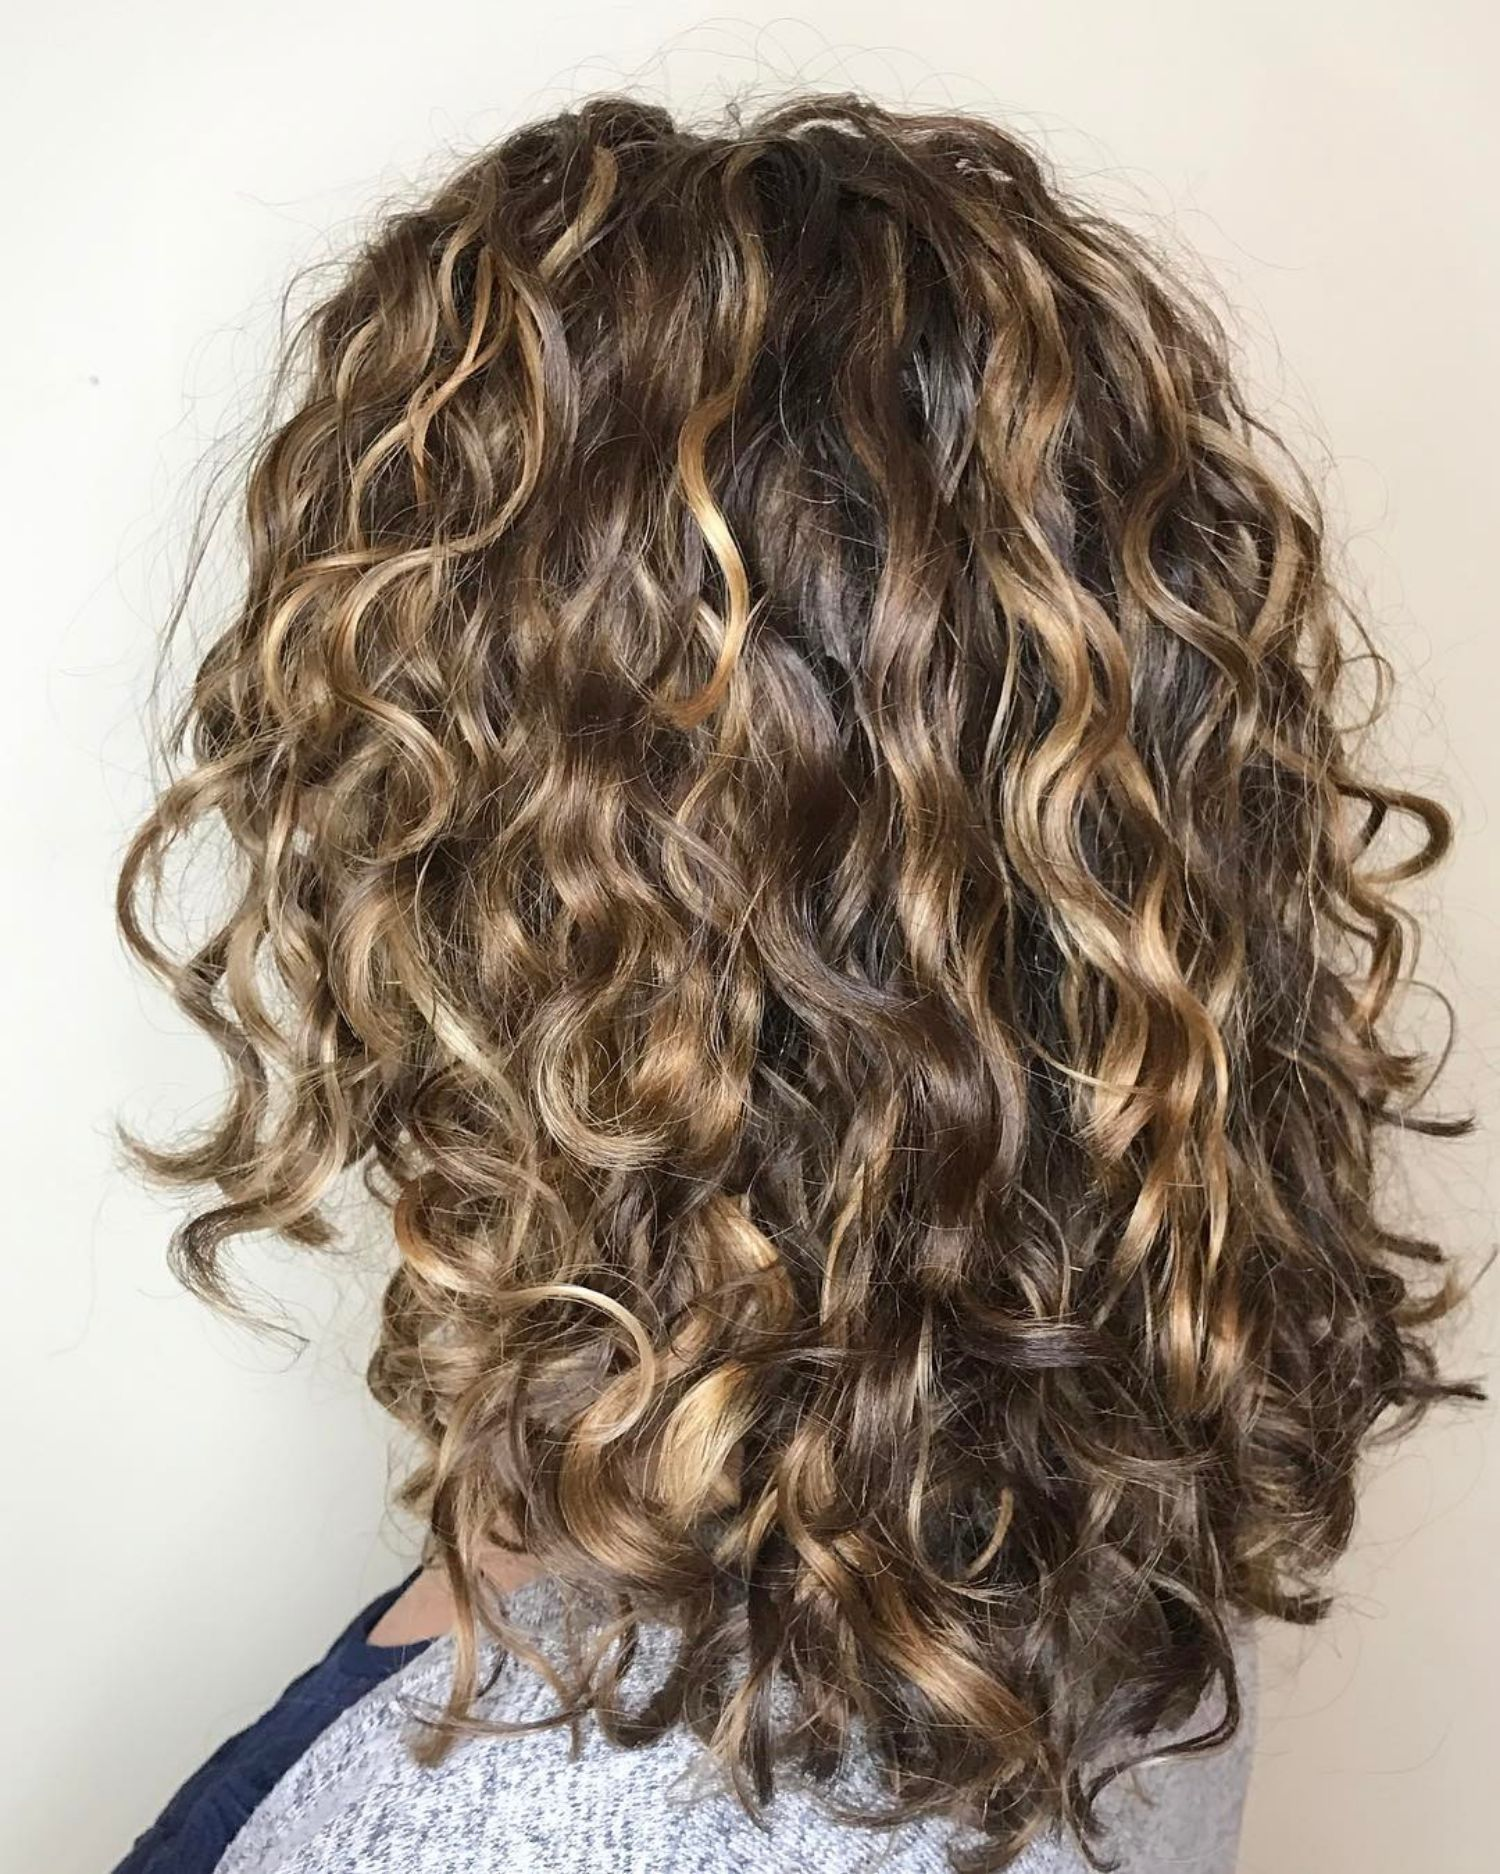 Styles and Cuts for Naturally Curly Hair in Hair Curly